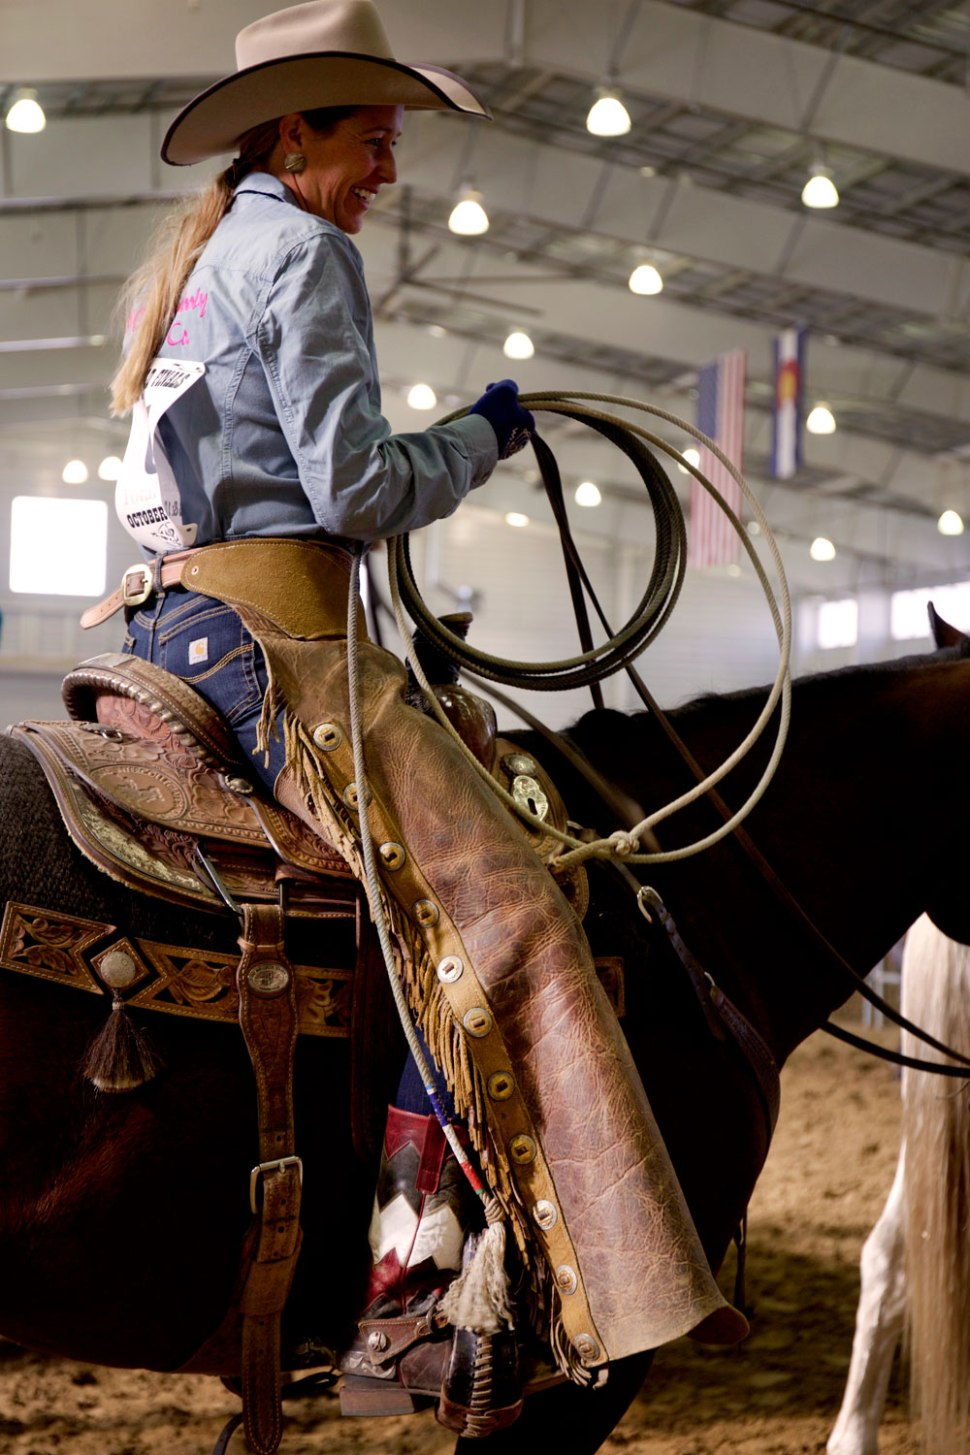 Wild 'N' Wooly at the Rodeo / Crafted in Carhartt